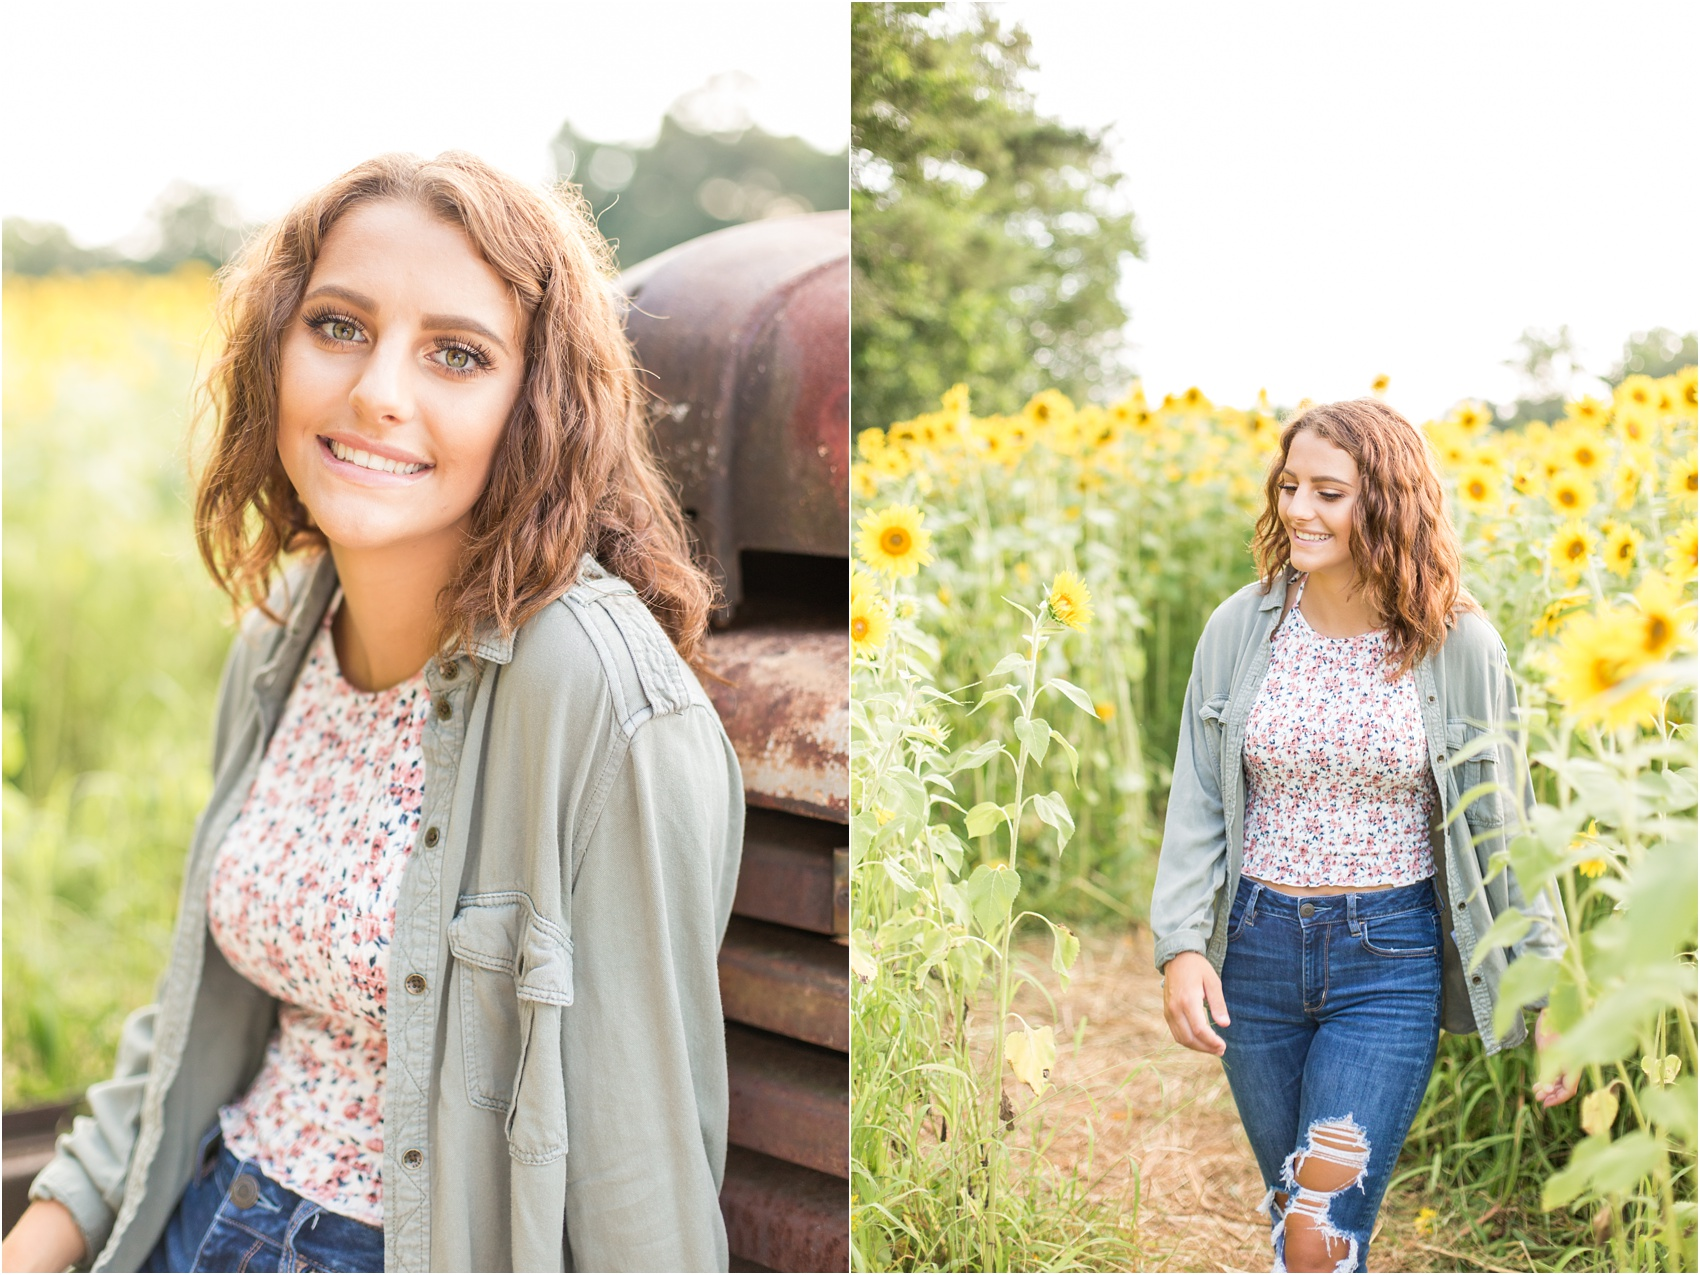 Savannah Eve Photography- Ashley Baysden- Class of 2019-76.jpg